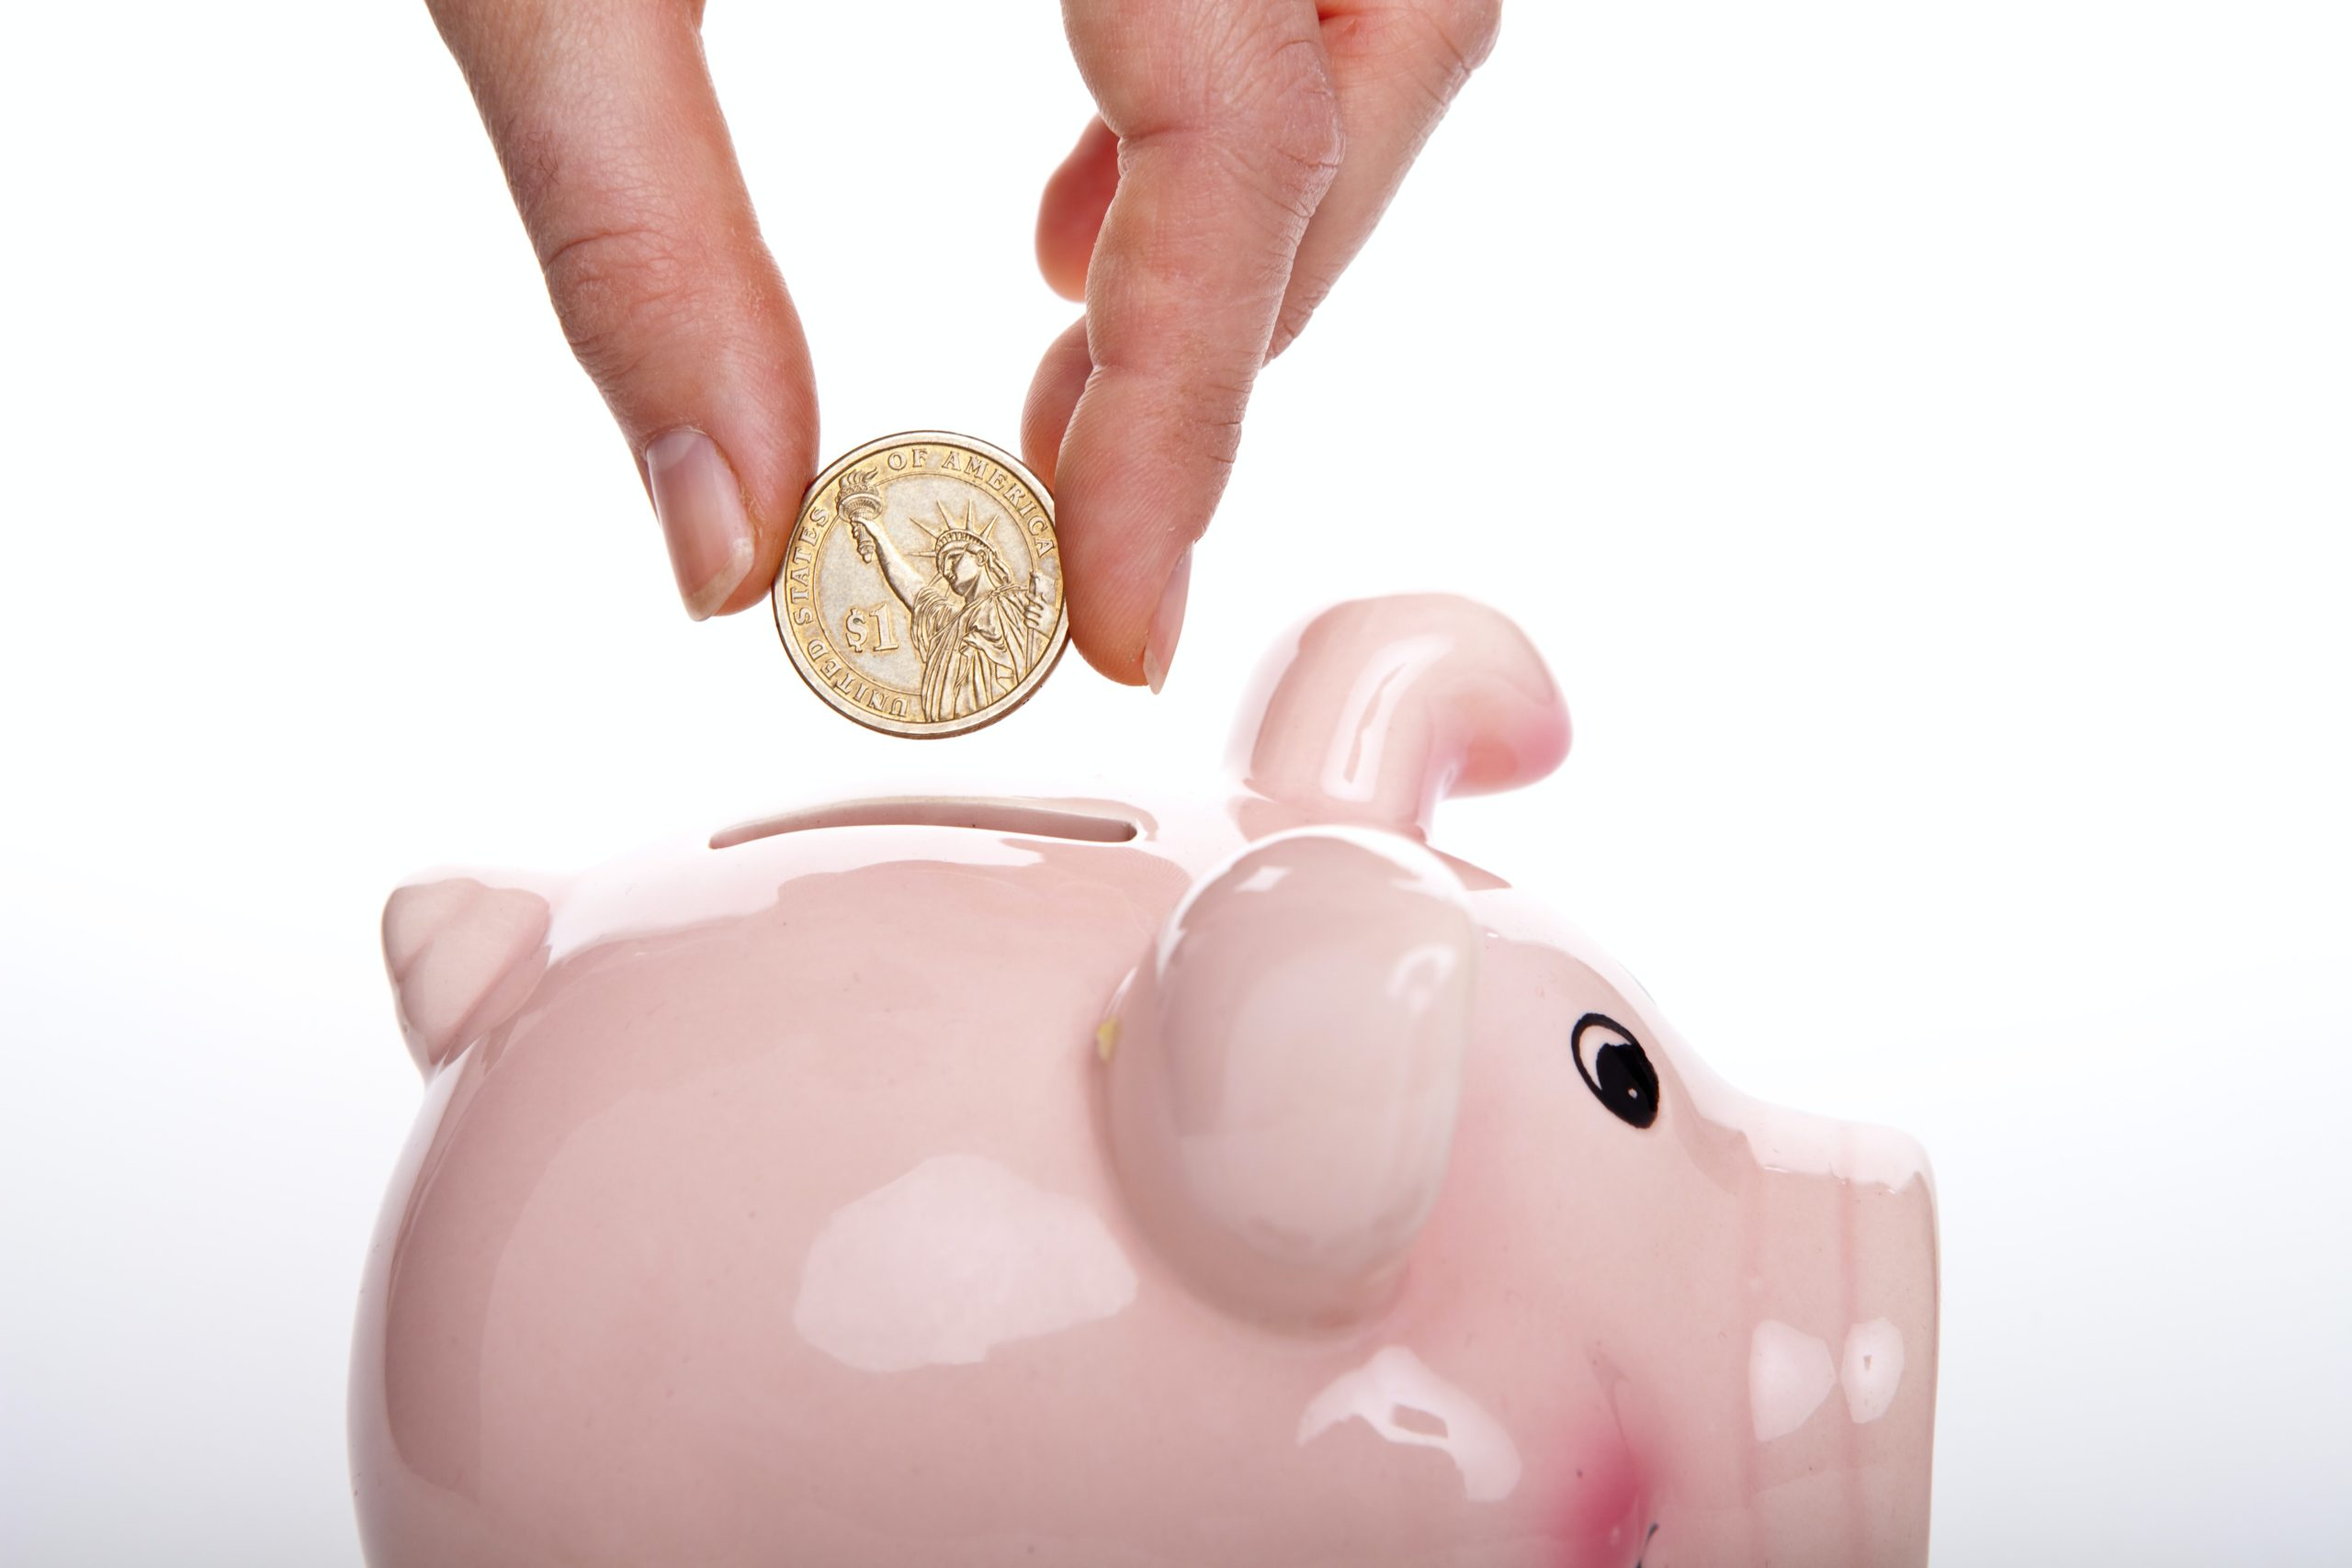 hire an expert and save money as depicted by a hand holding a coin about to be dropped inside a piggy bank